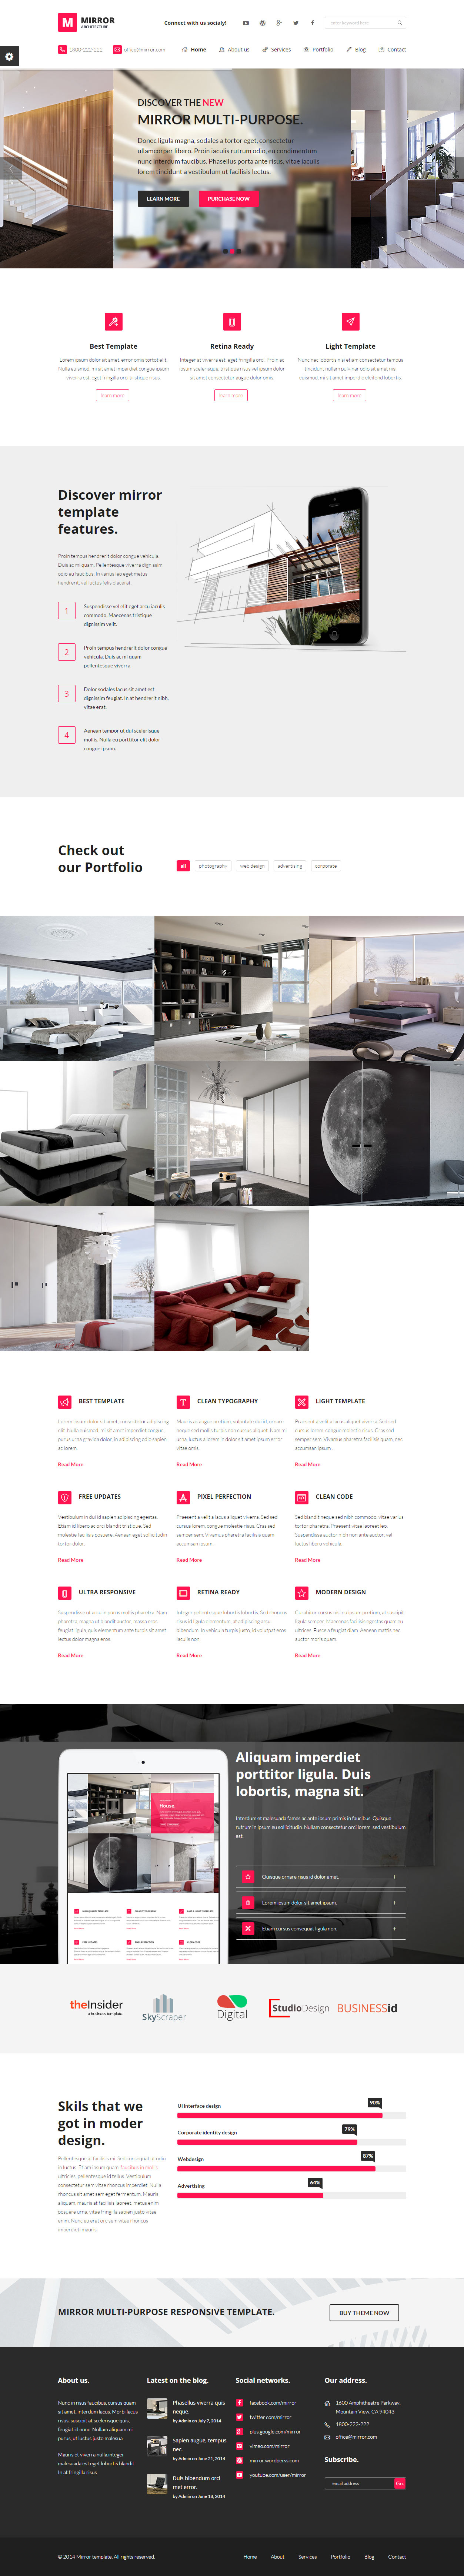 Best Responsive Interior Design And Architecture HTML5 Templates 2014 0